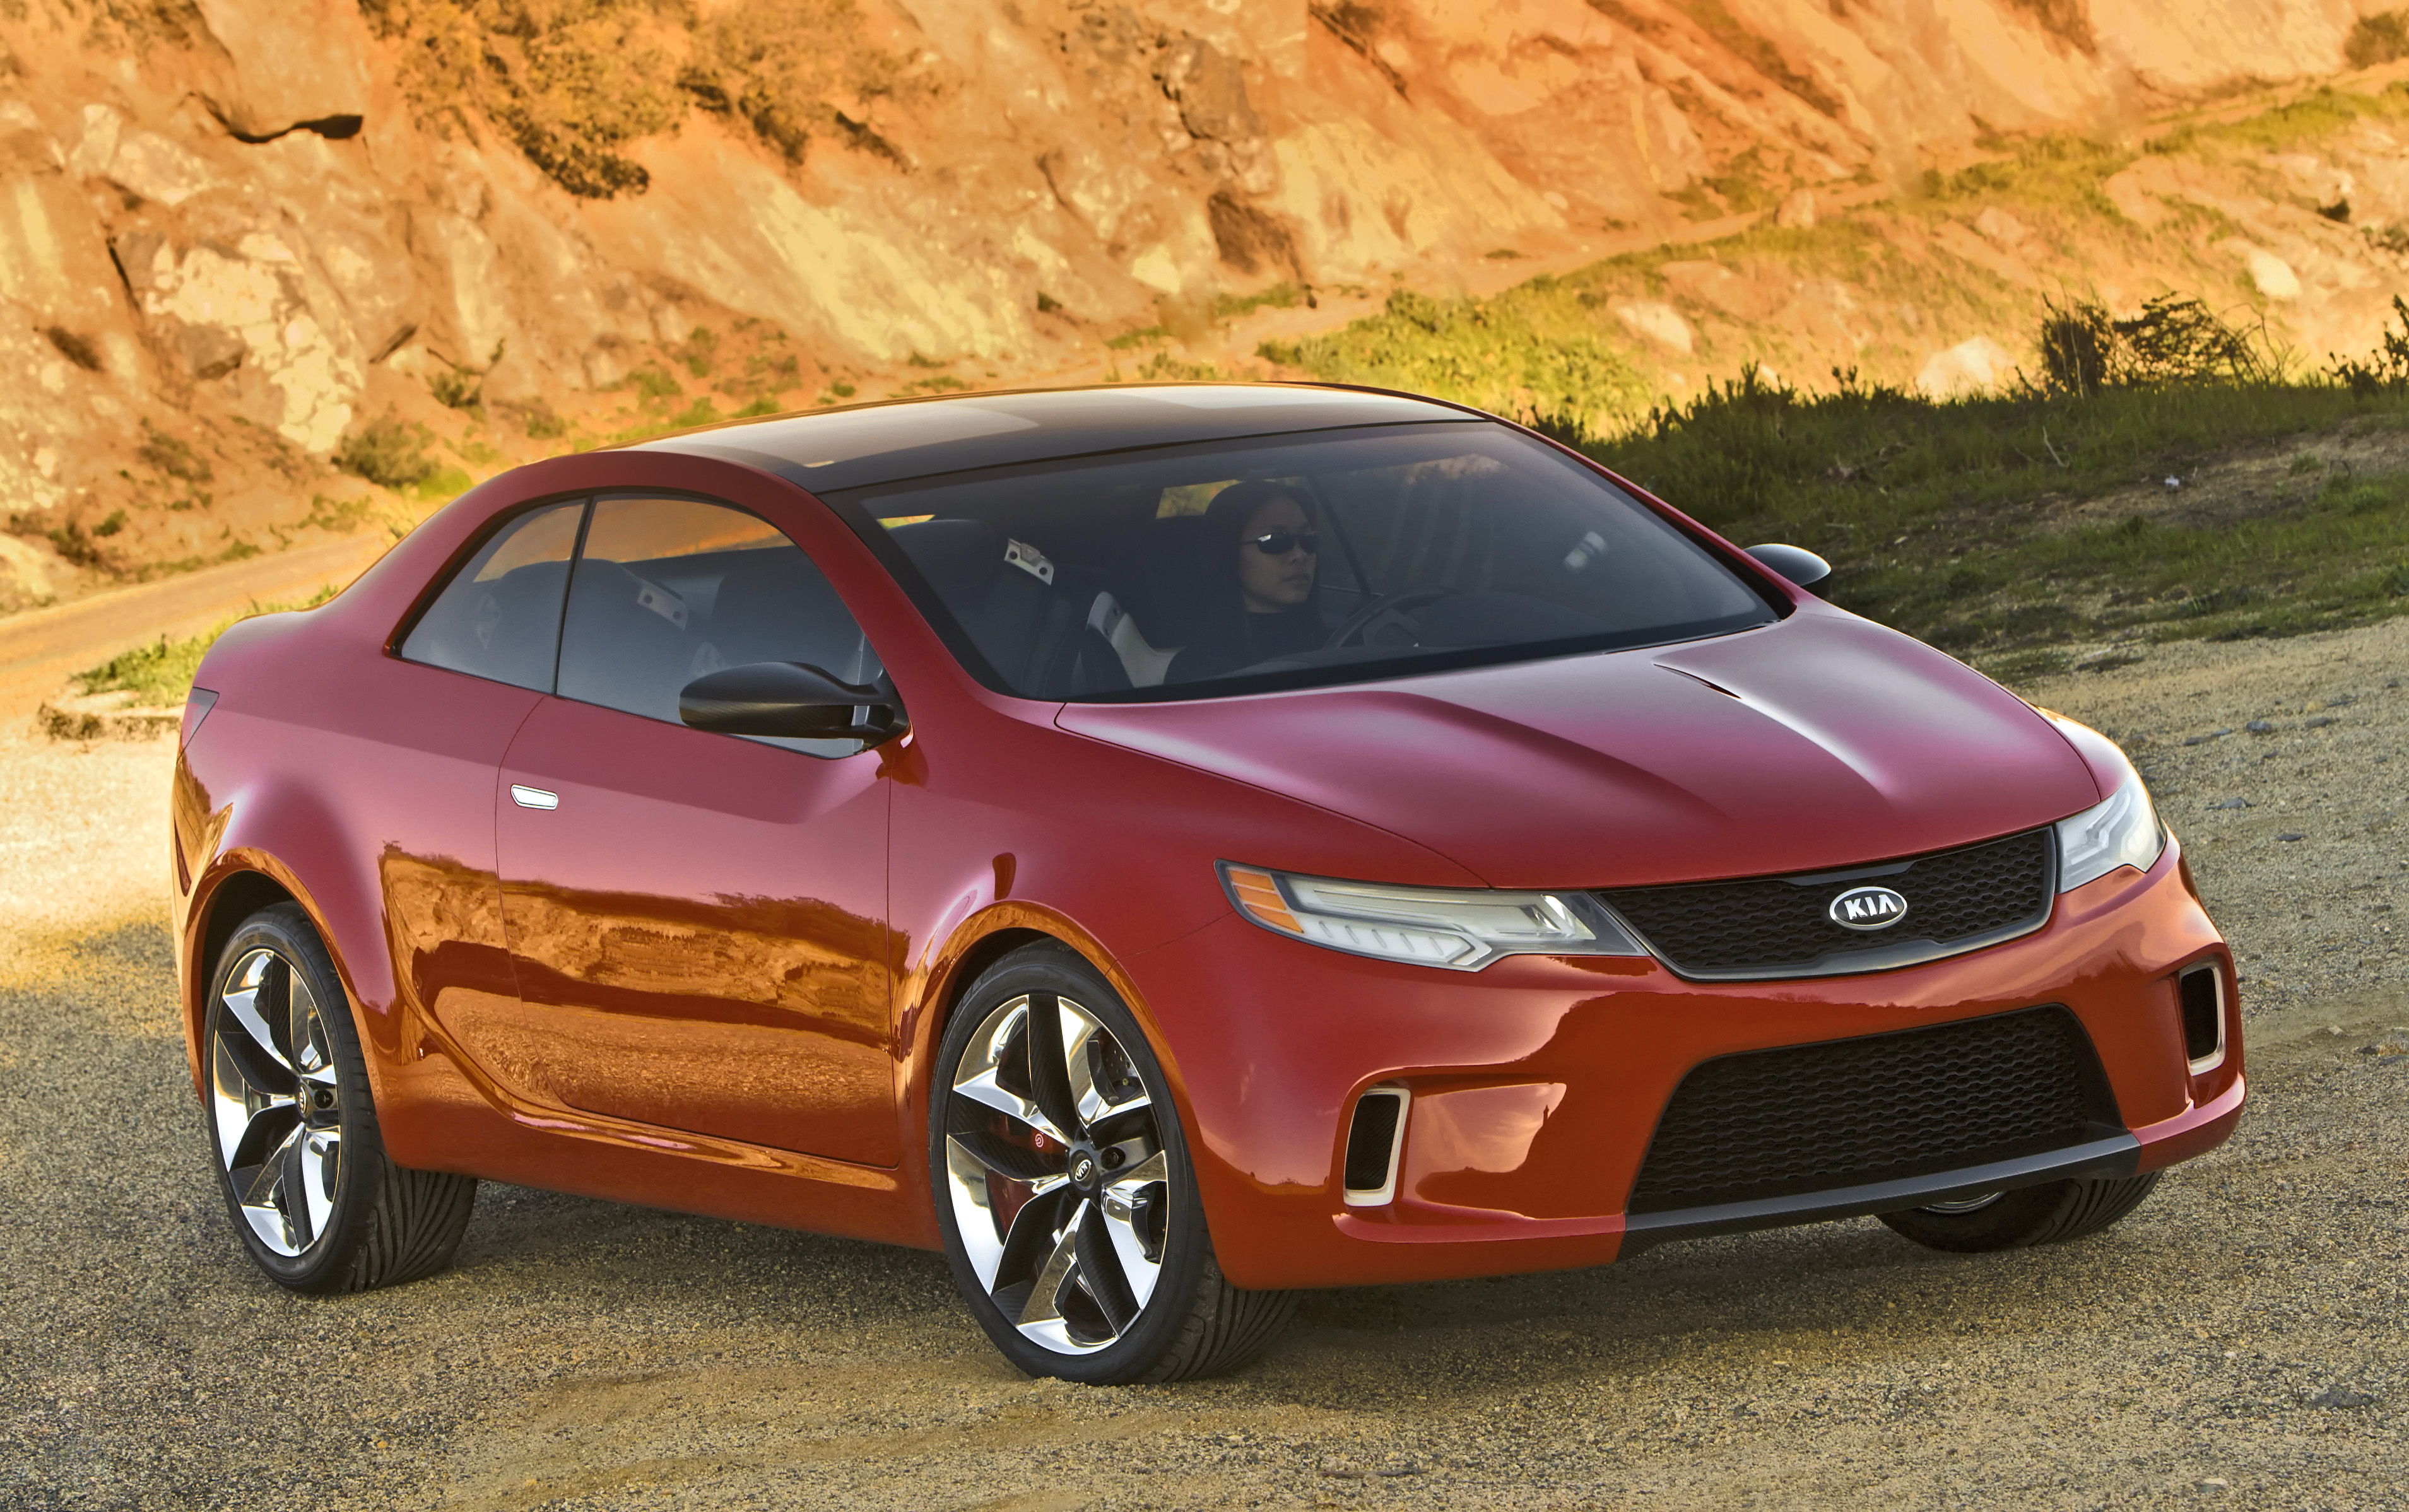 2019 Kia KOUP Concept photo - 1